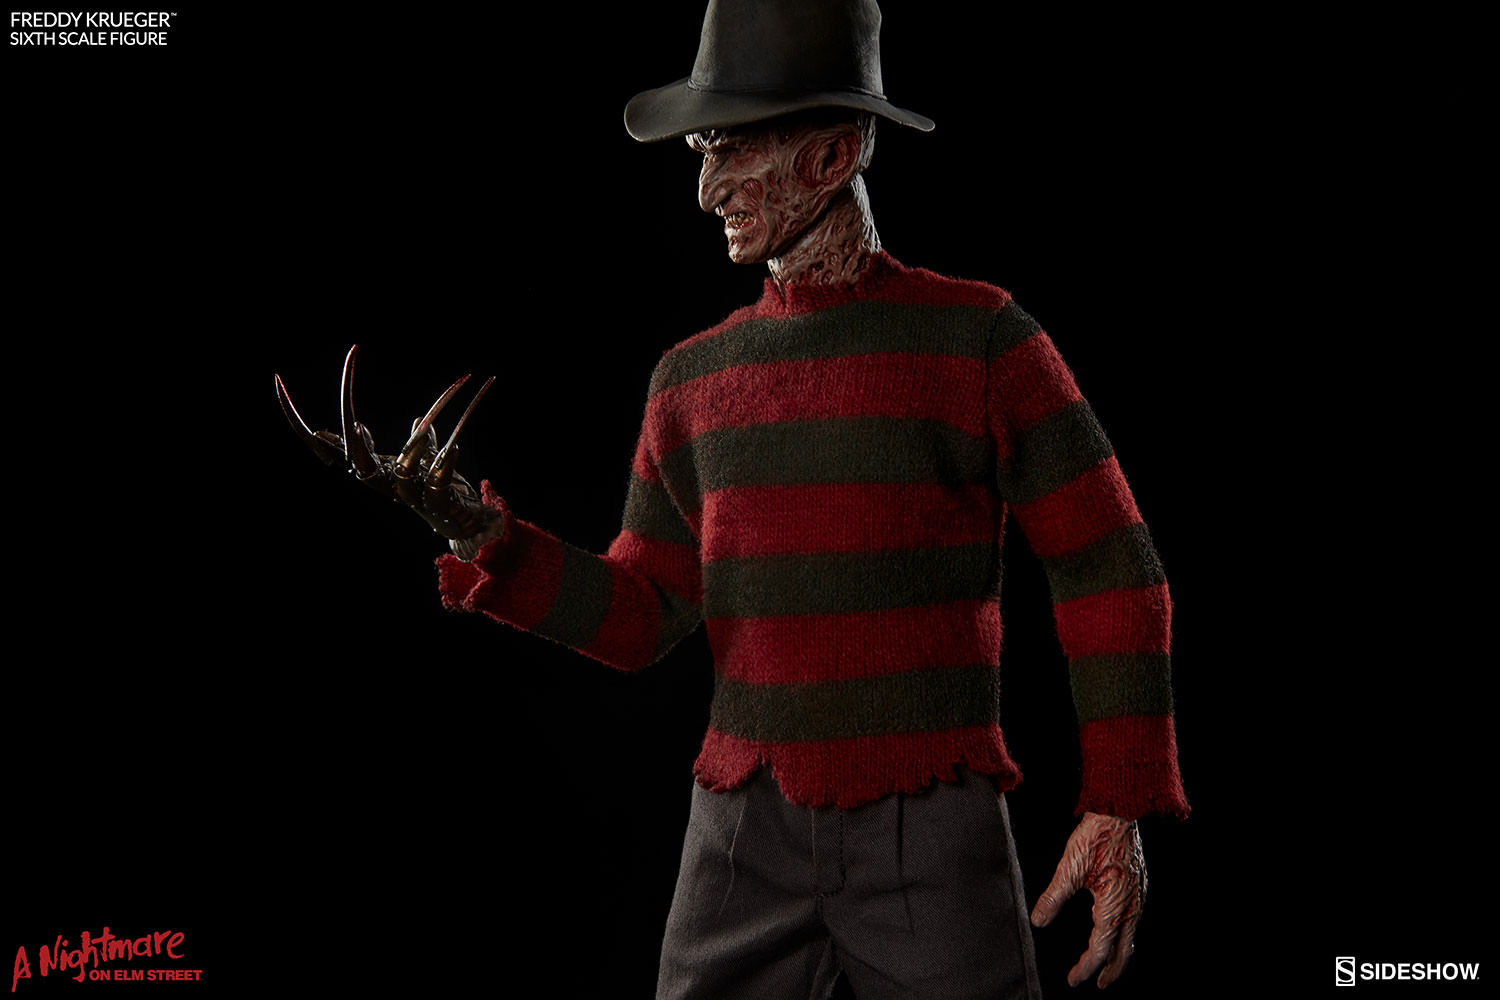 sideshow-nightmare-on-elm-street-freddy-krueger-sixth-scale-fgure-6